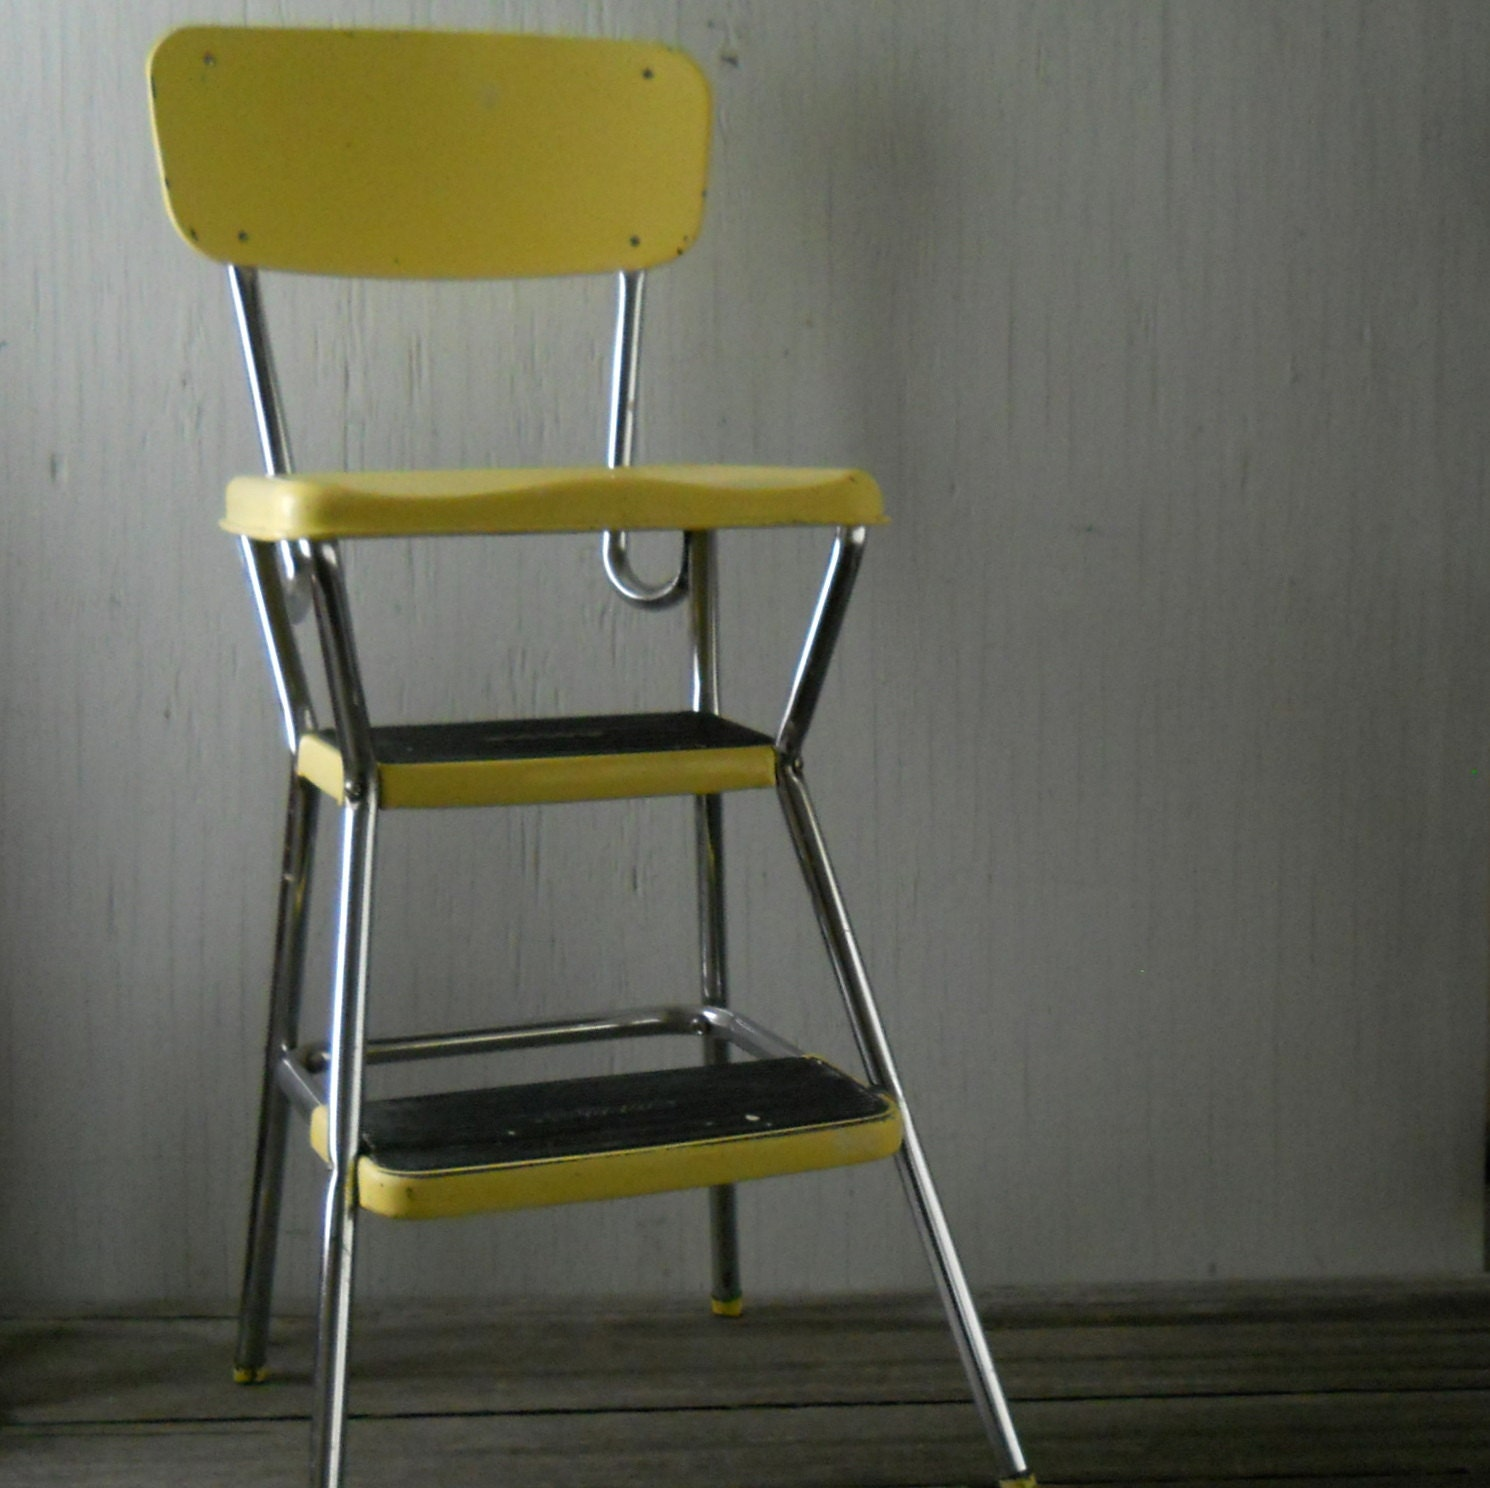 Vintage Yellow Cosco Step Stool